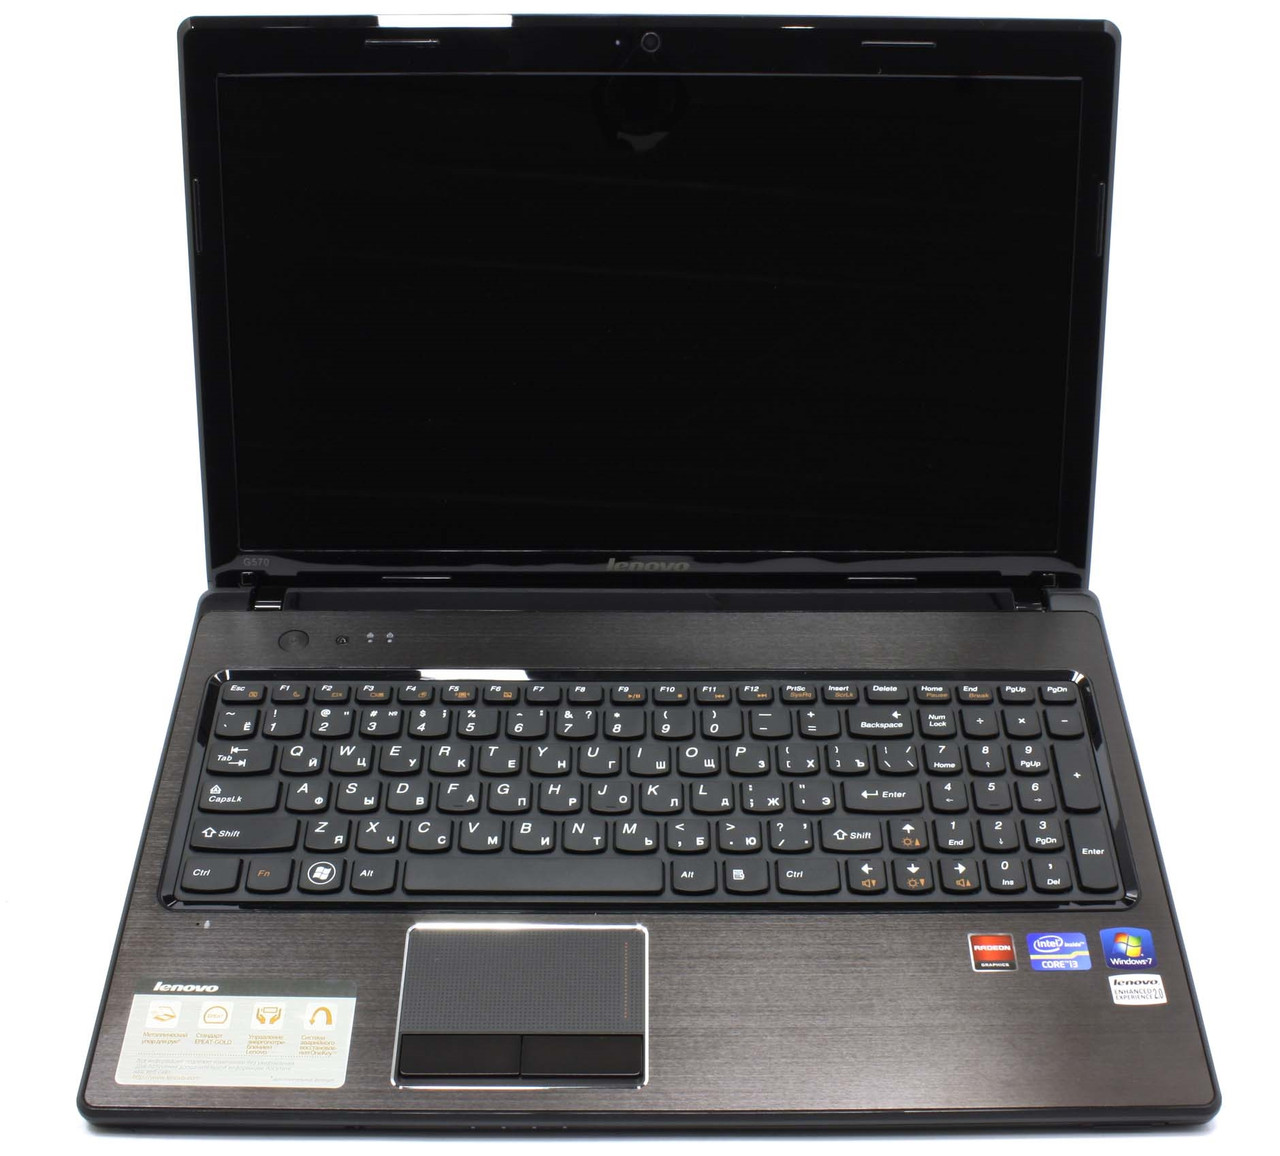 Ноутбук бу Lenovo G570 Core i3 2350M 2.3GHz/4 Gb/500 Gb